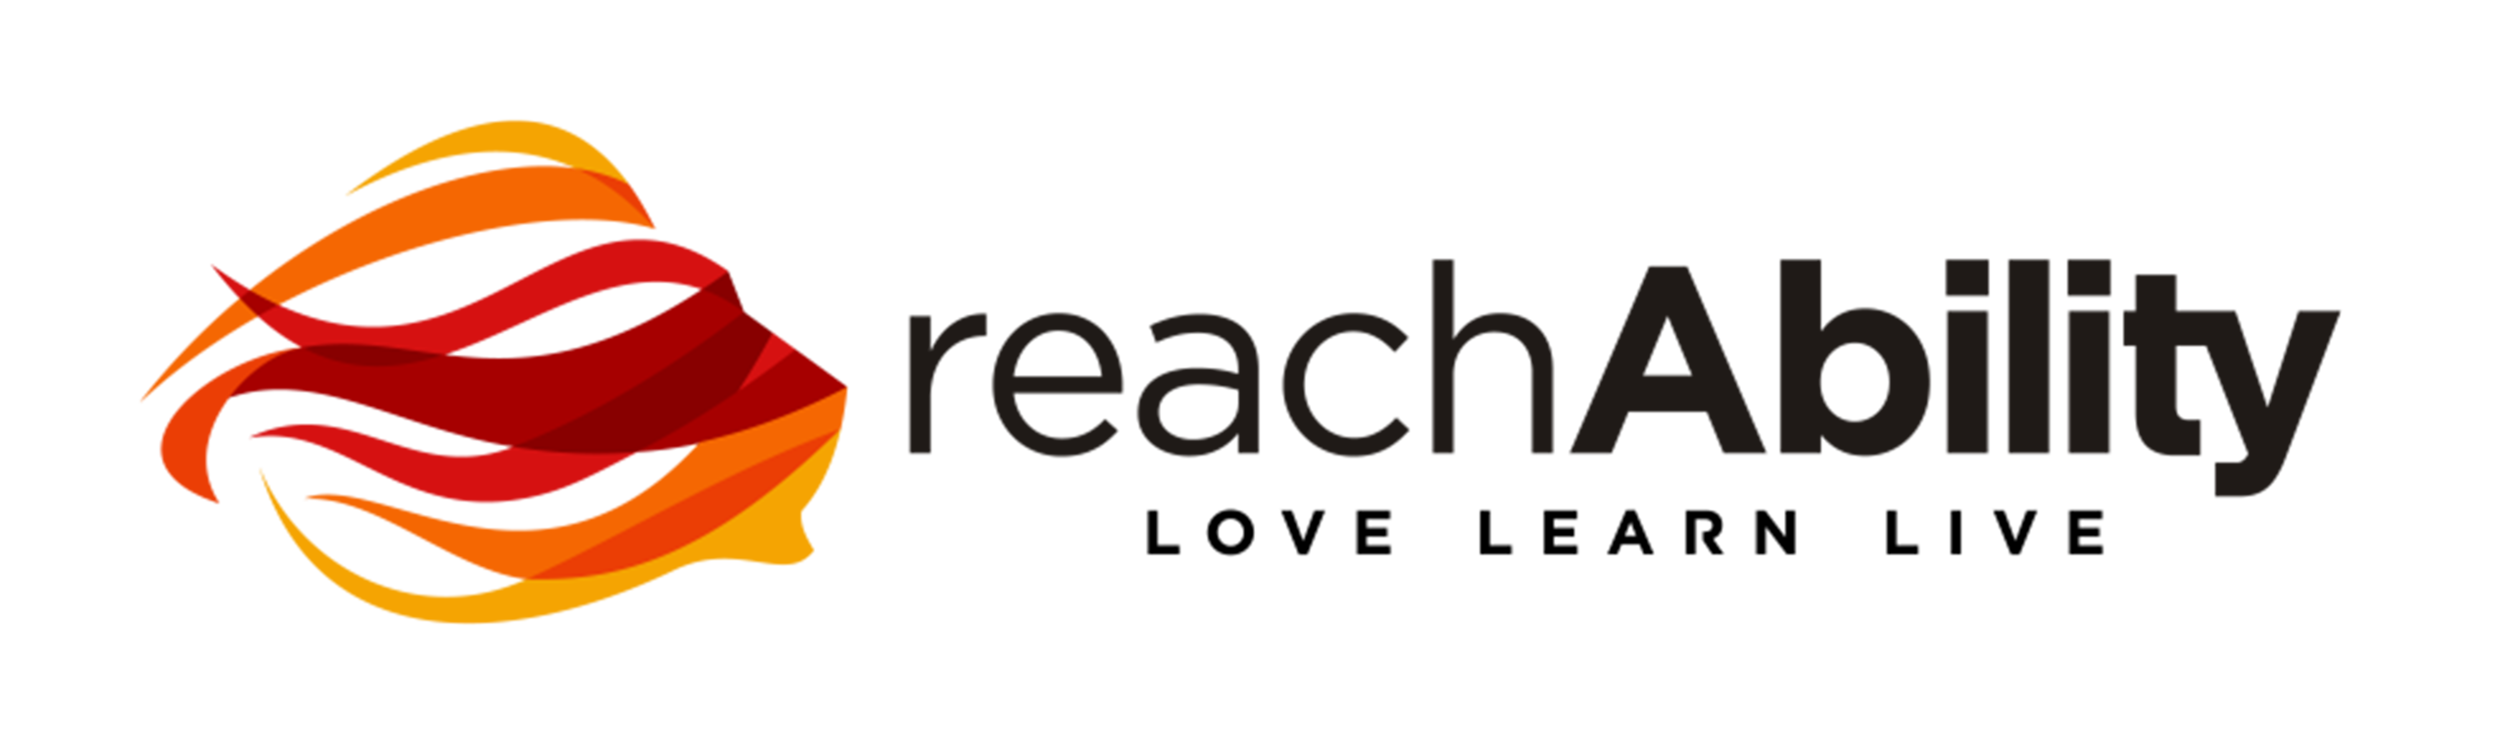 reachAbility-black-withtag.png